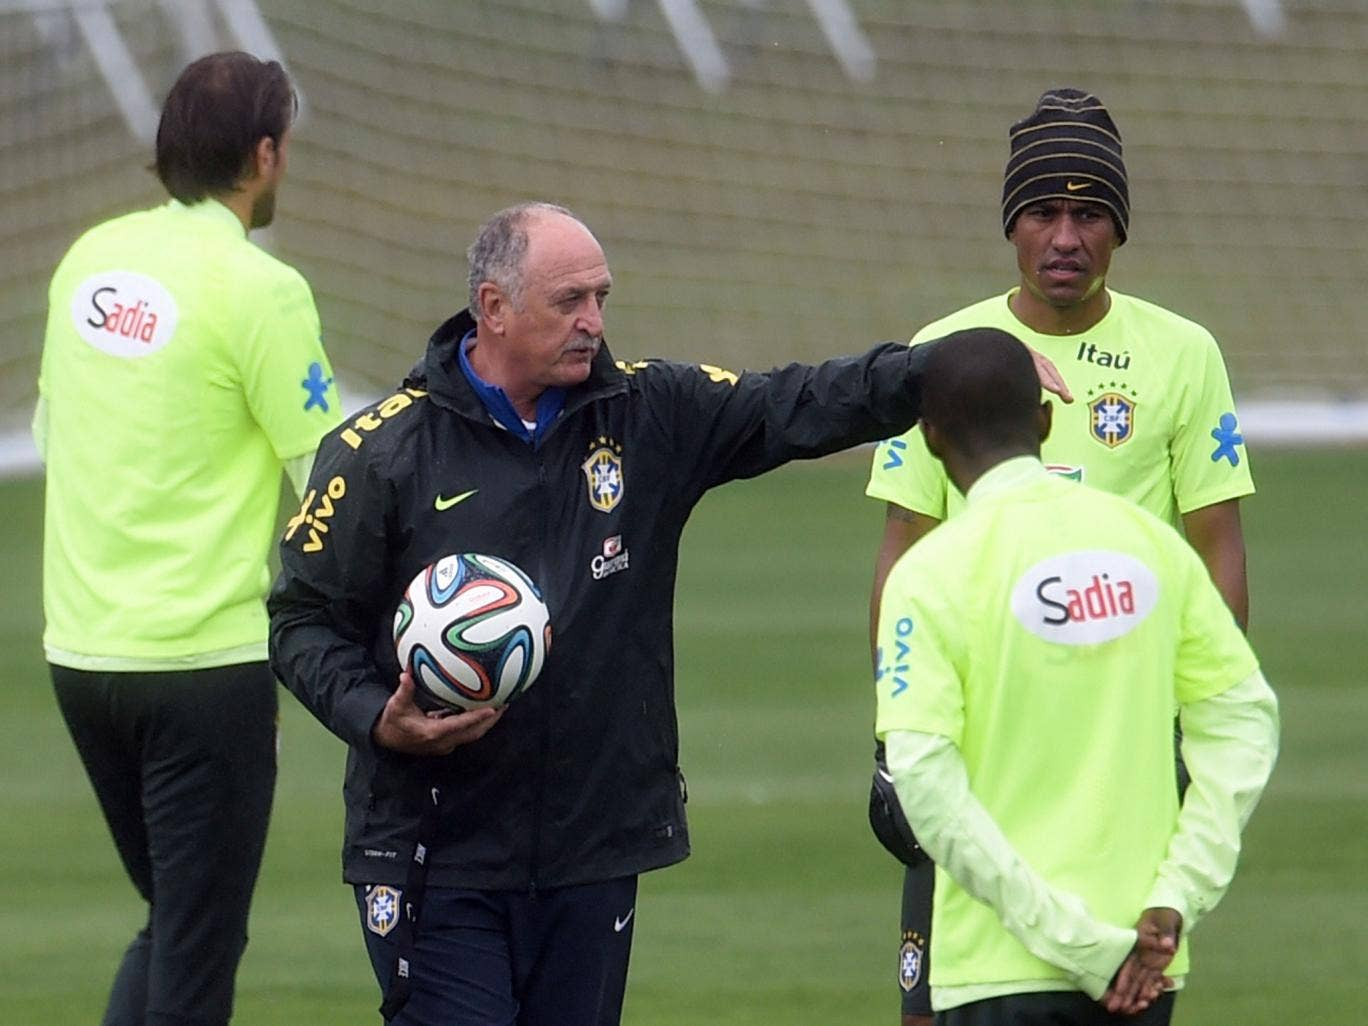 Brazil's coach Luiz Felipe Scolari speaks with players as they take part in a training session